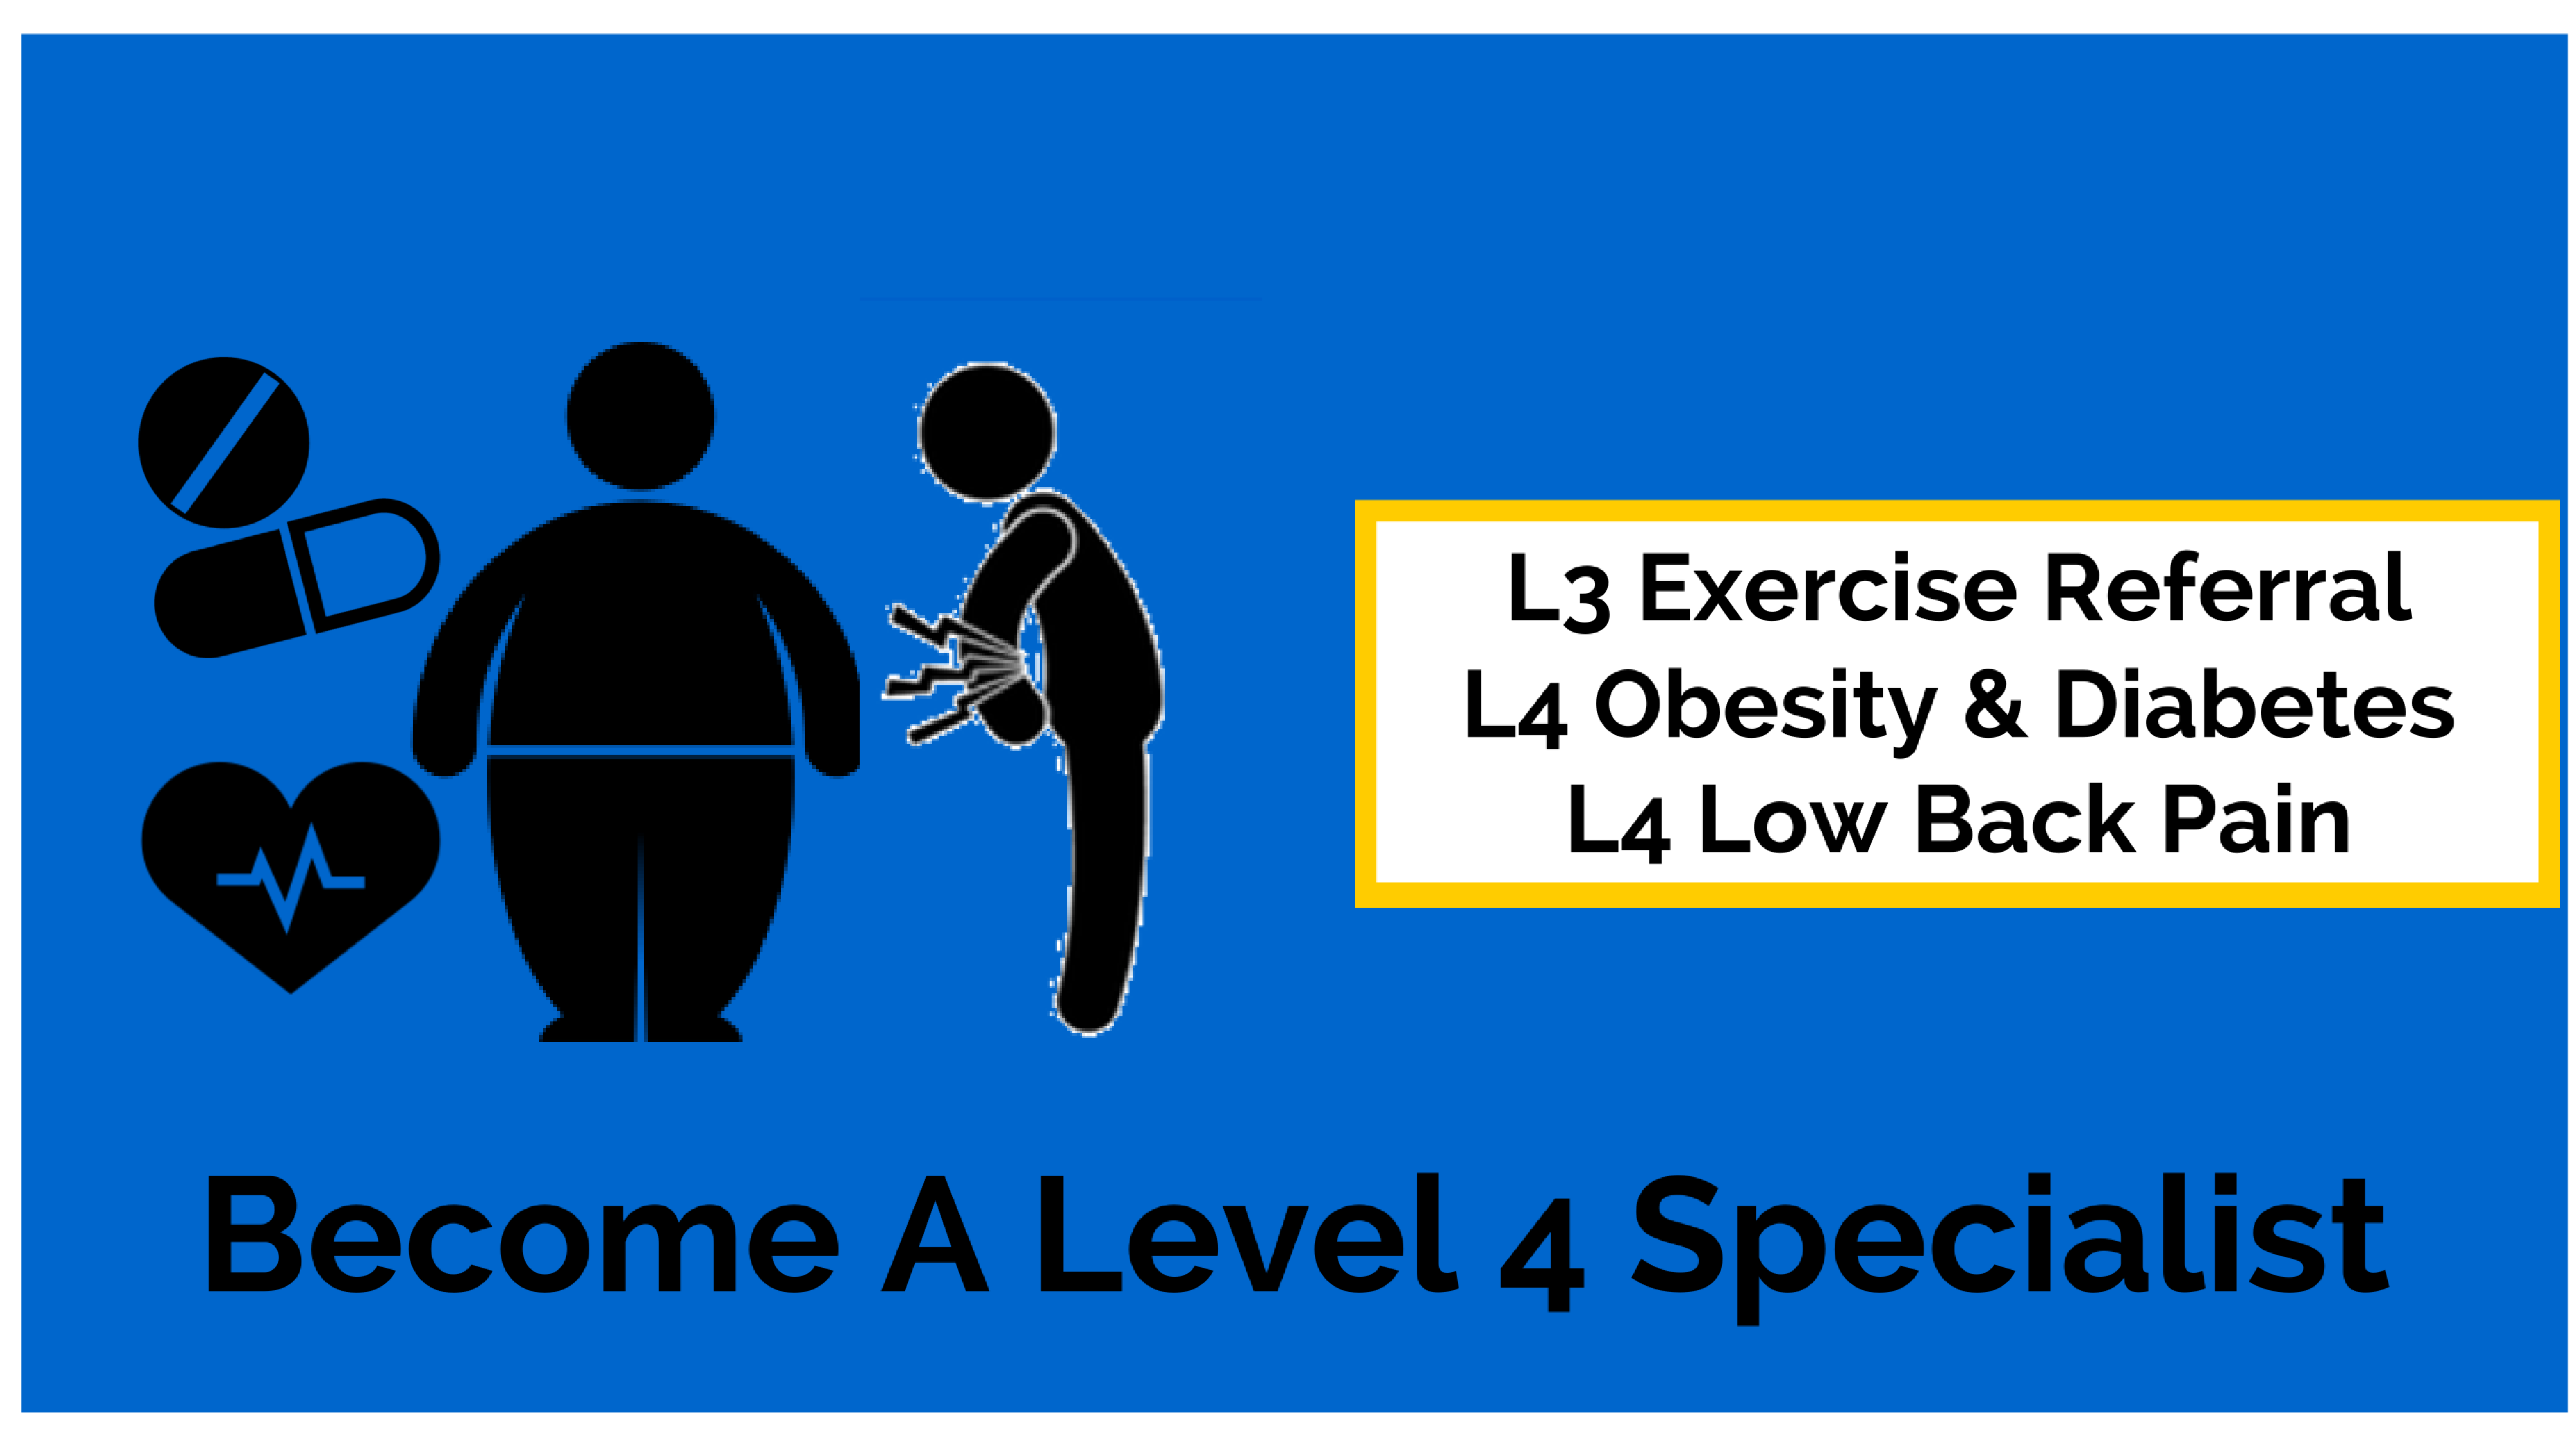 Become a Level 4 Specialist